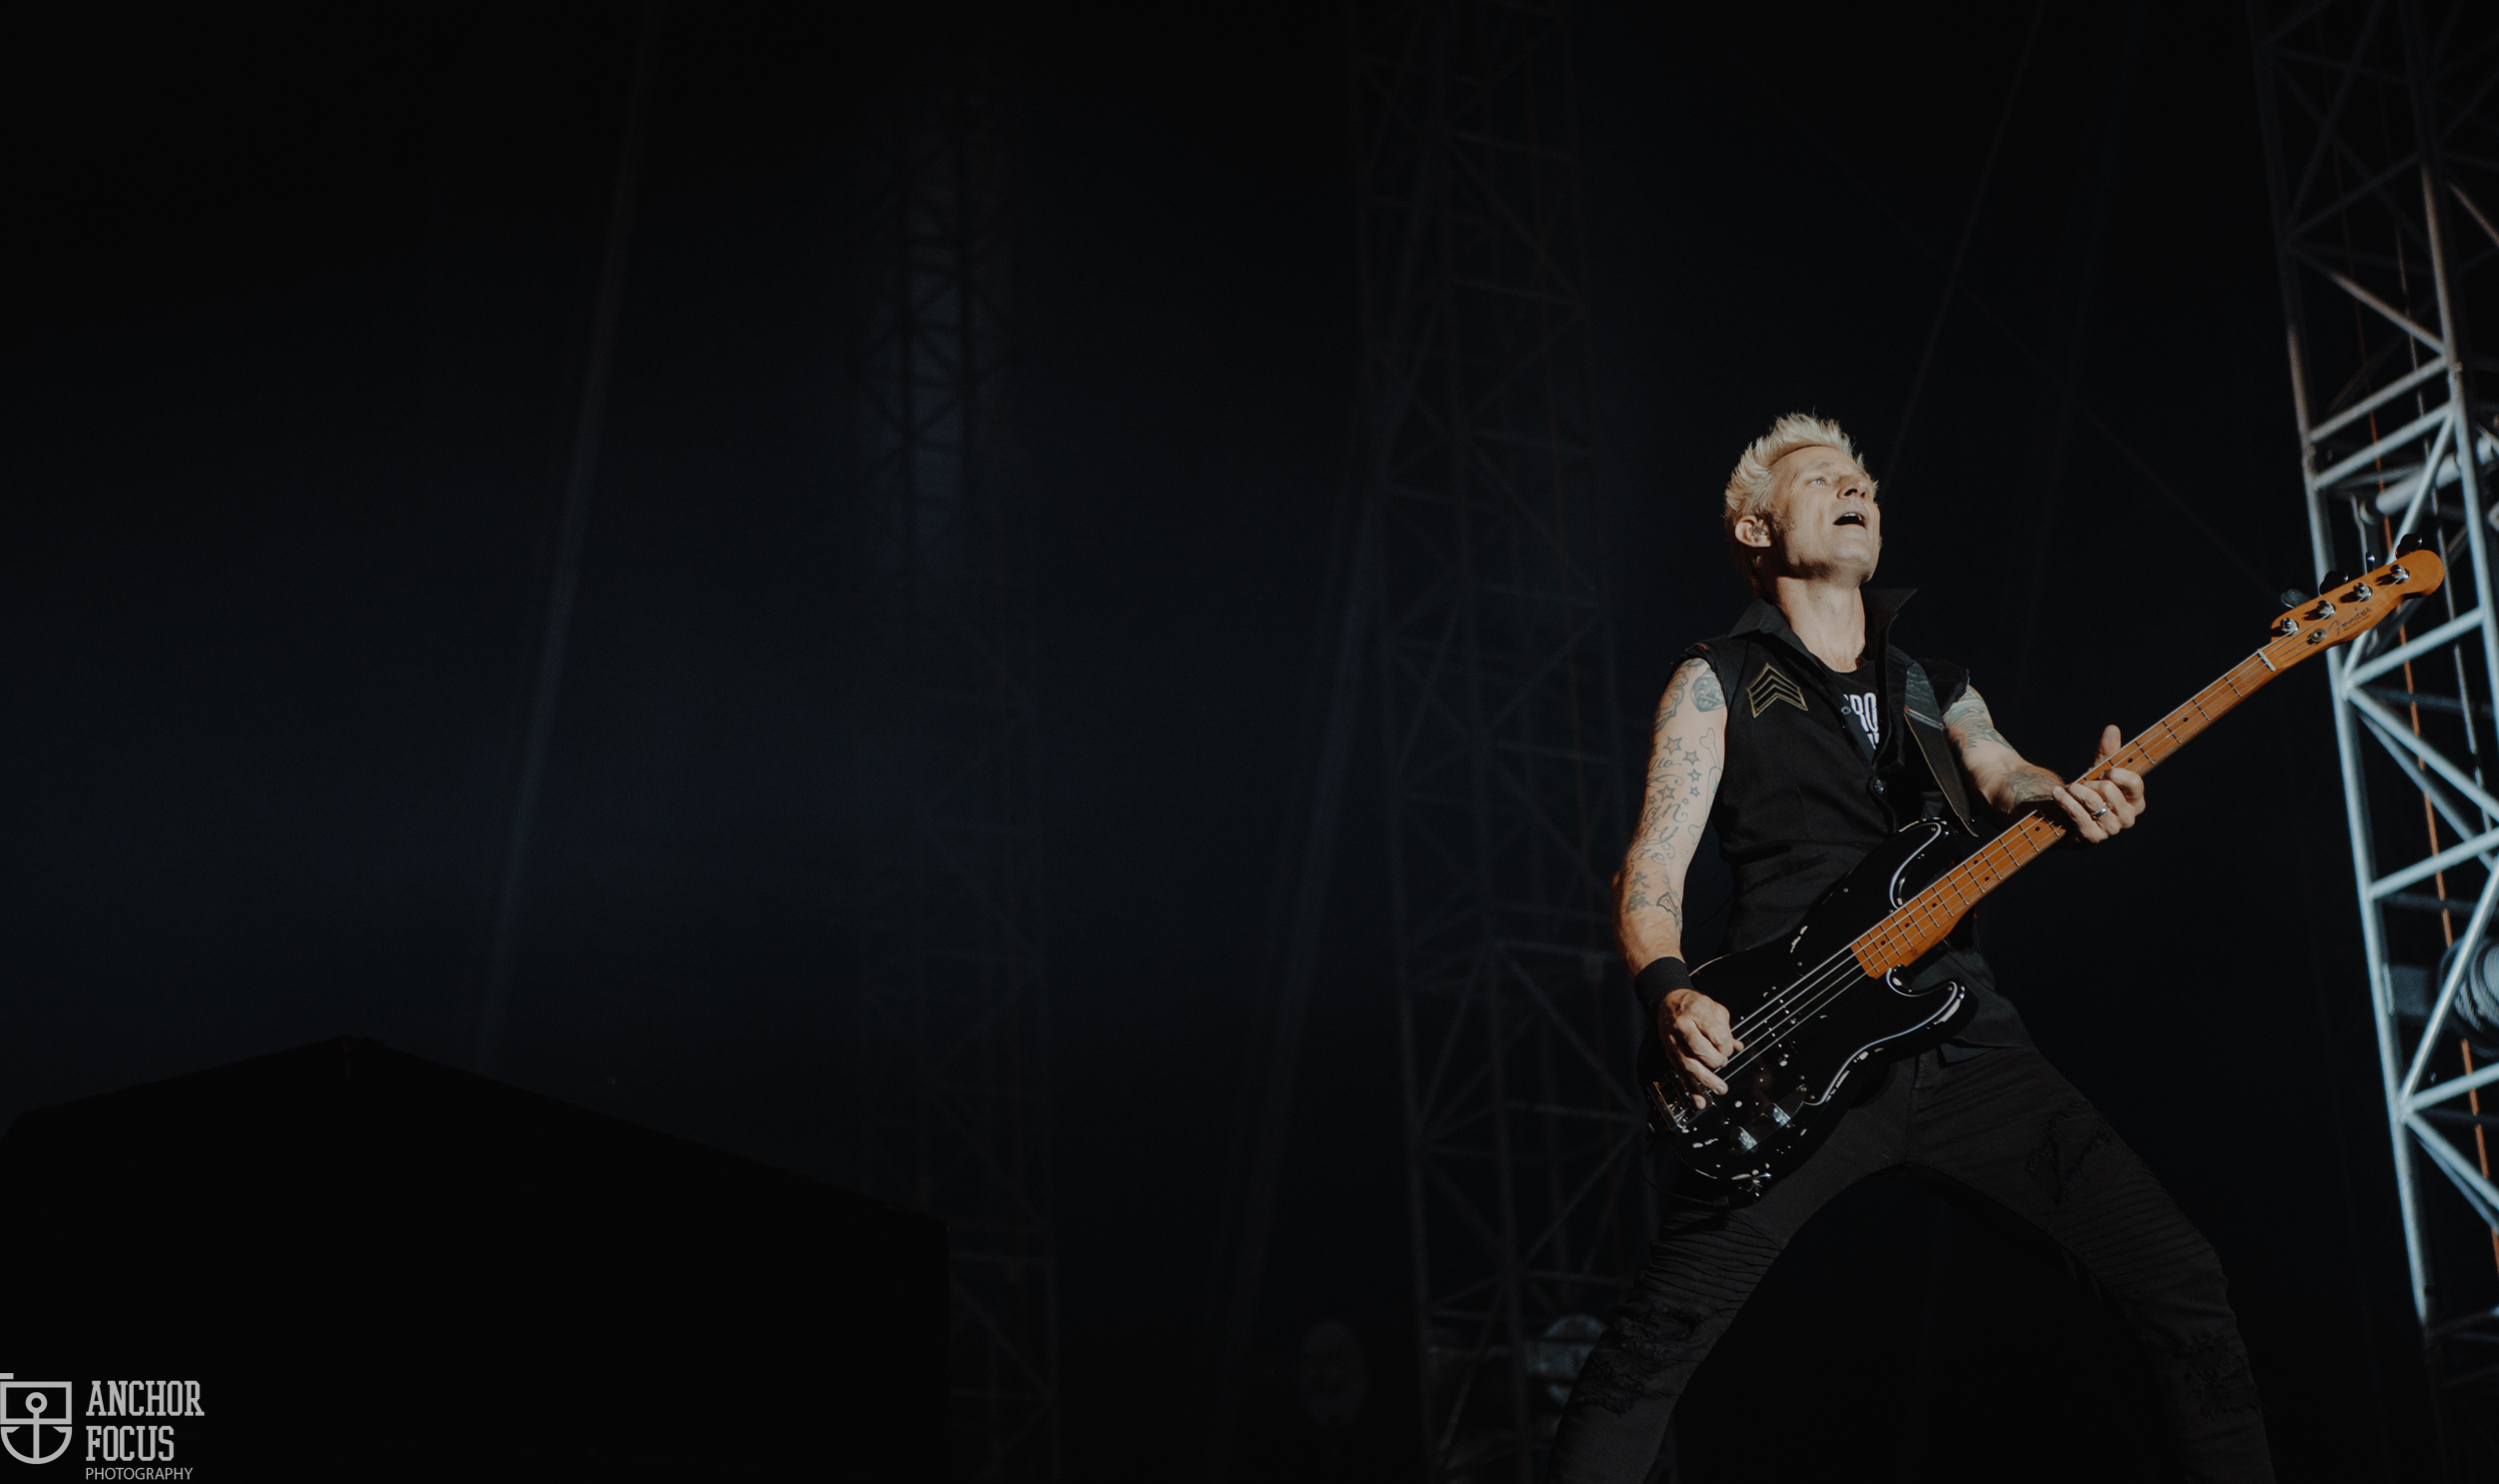 Green Day's Mike Dirnt, live at Nova Rock. (c) Natasja de Vries